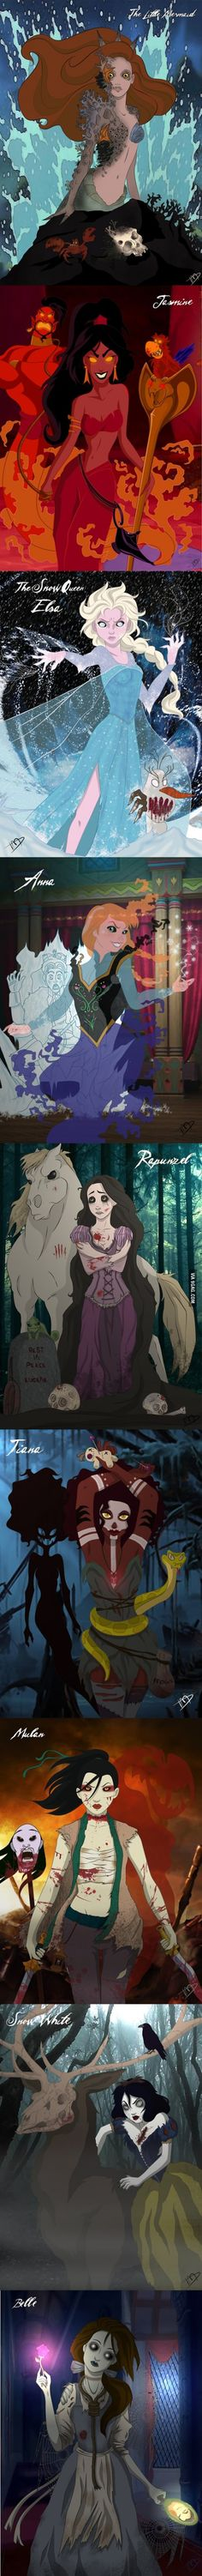 Evil Disney Princess- Well this will give me nightmares.<<<<< that's actually really cool! Those would be awesome Halloween costumes